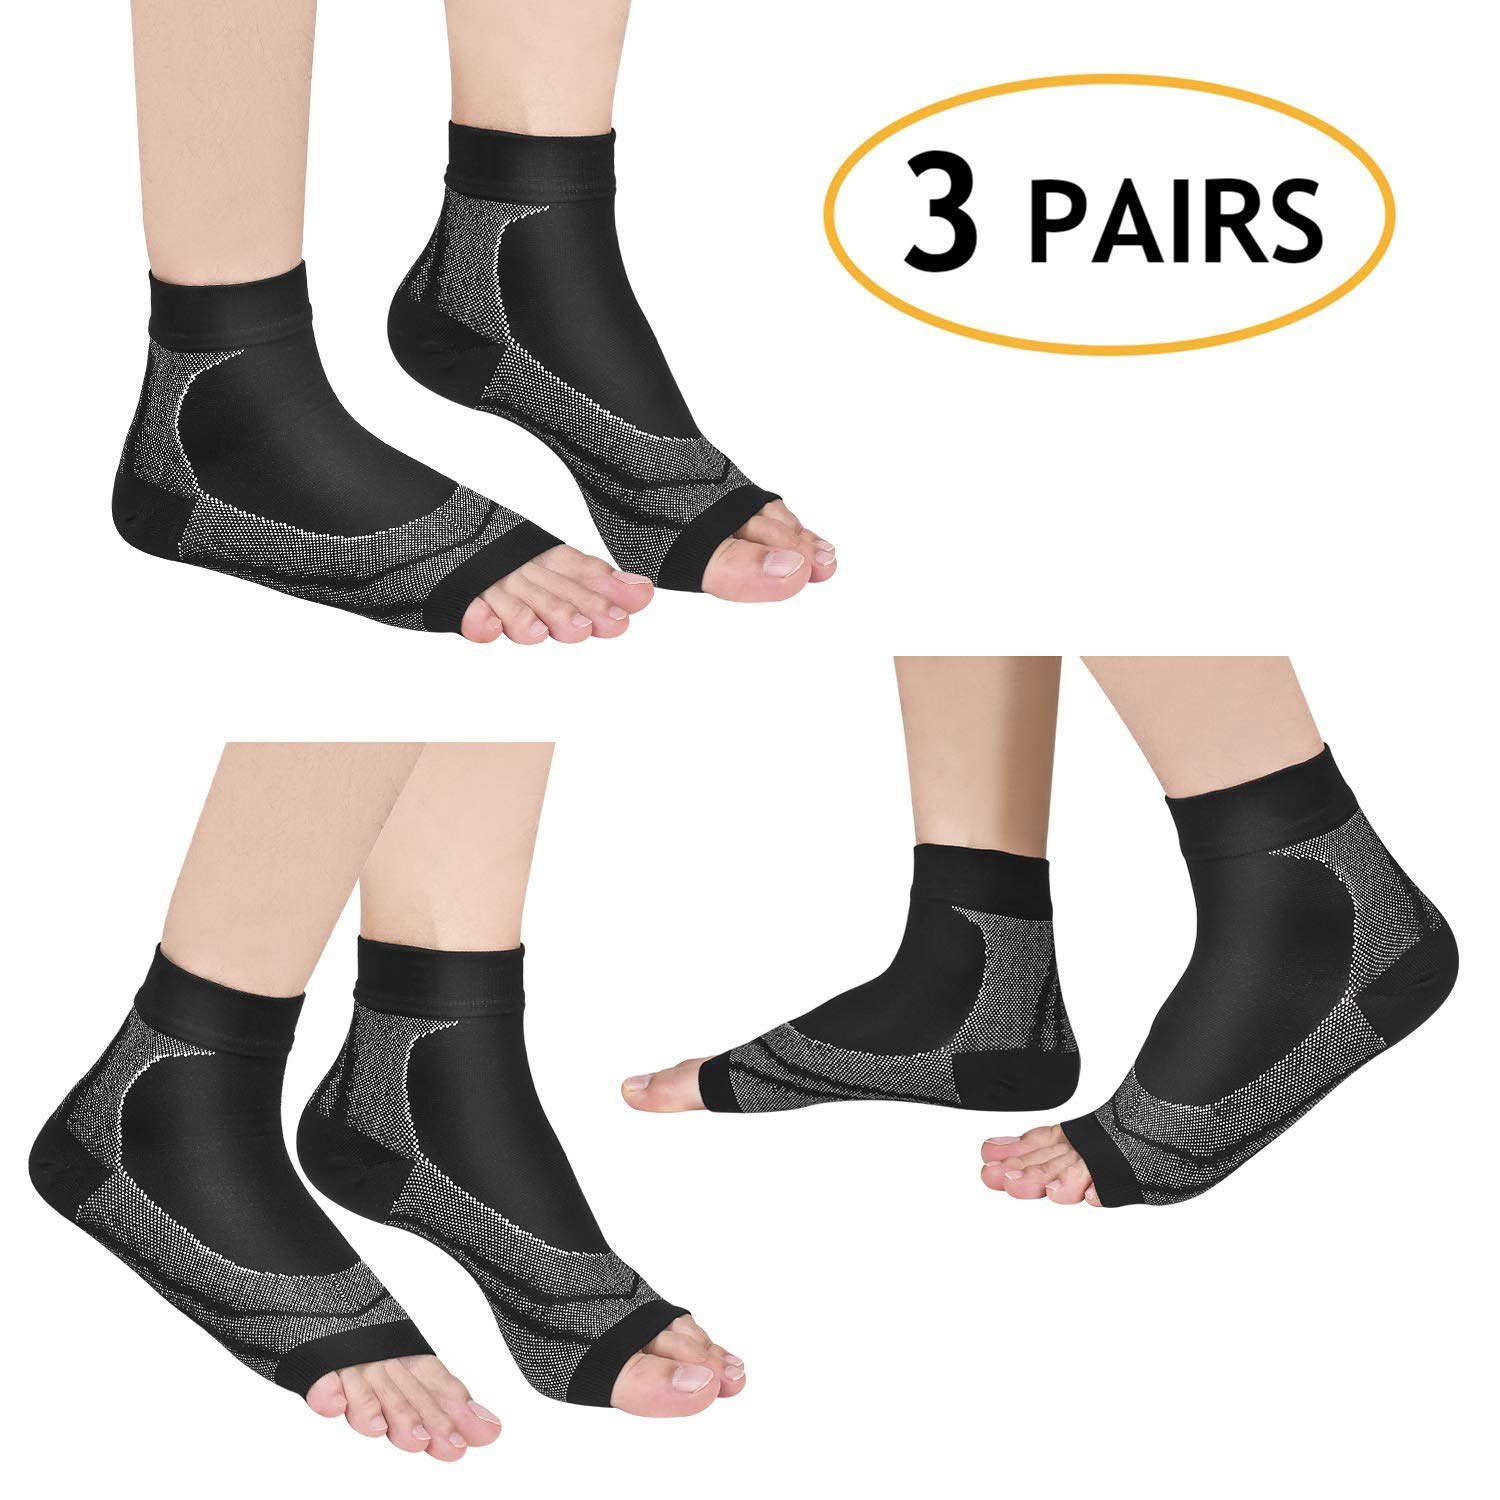 Vitty Plantar Fasciitis Socks for Men & Women(3Pairs of Compression Socks Per Pack),GreatFoot CareCompression Foot Sleeves for Plantar Fasciitis Pain Relief, Heel Pain, Arch Support, Ankle Support